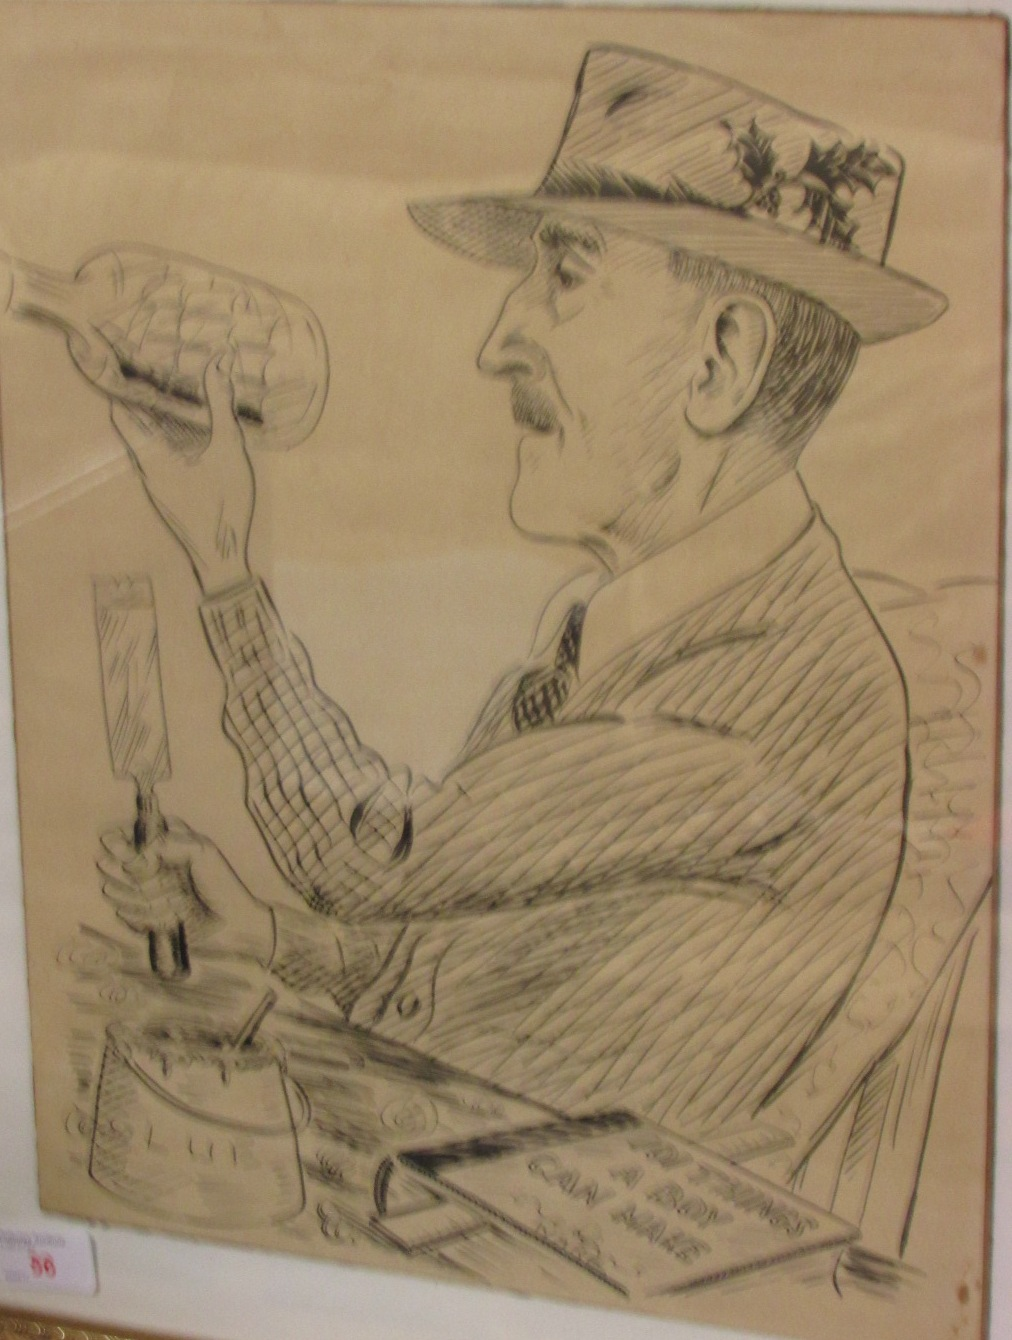 Lot 56 - A gentle cartoon depicting a gentleman making a ship in bottle with a book before him '101 things